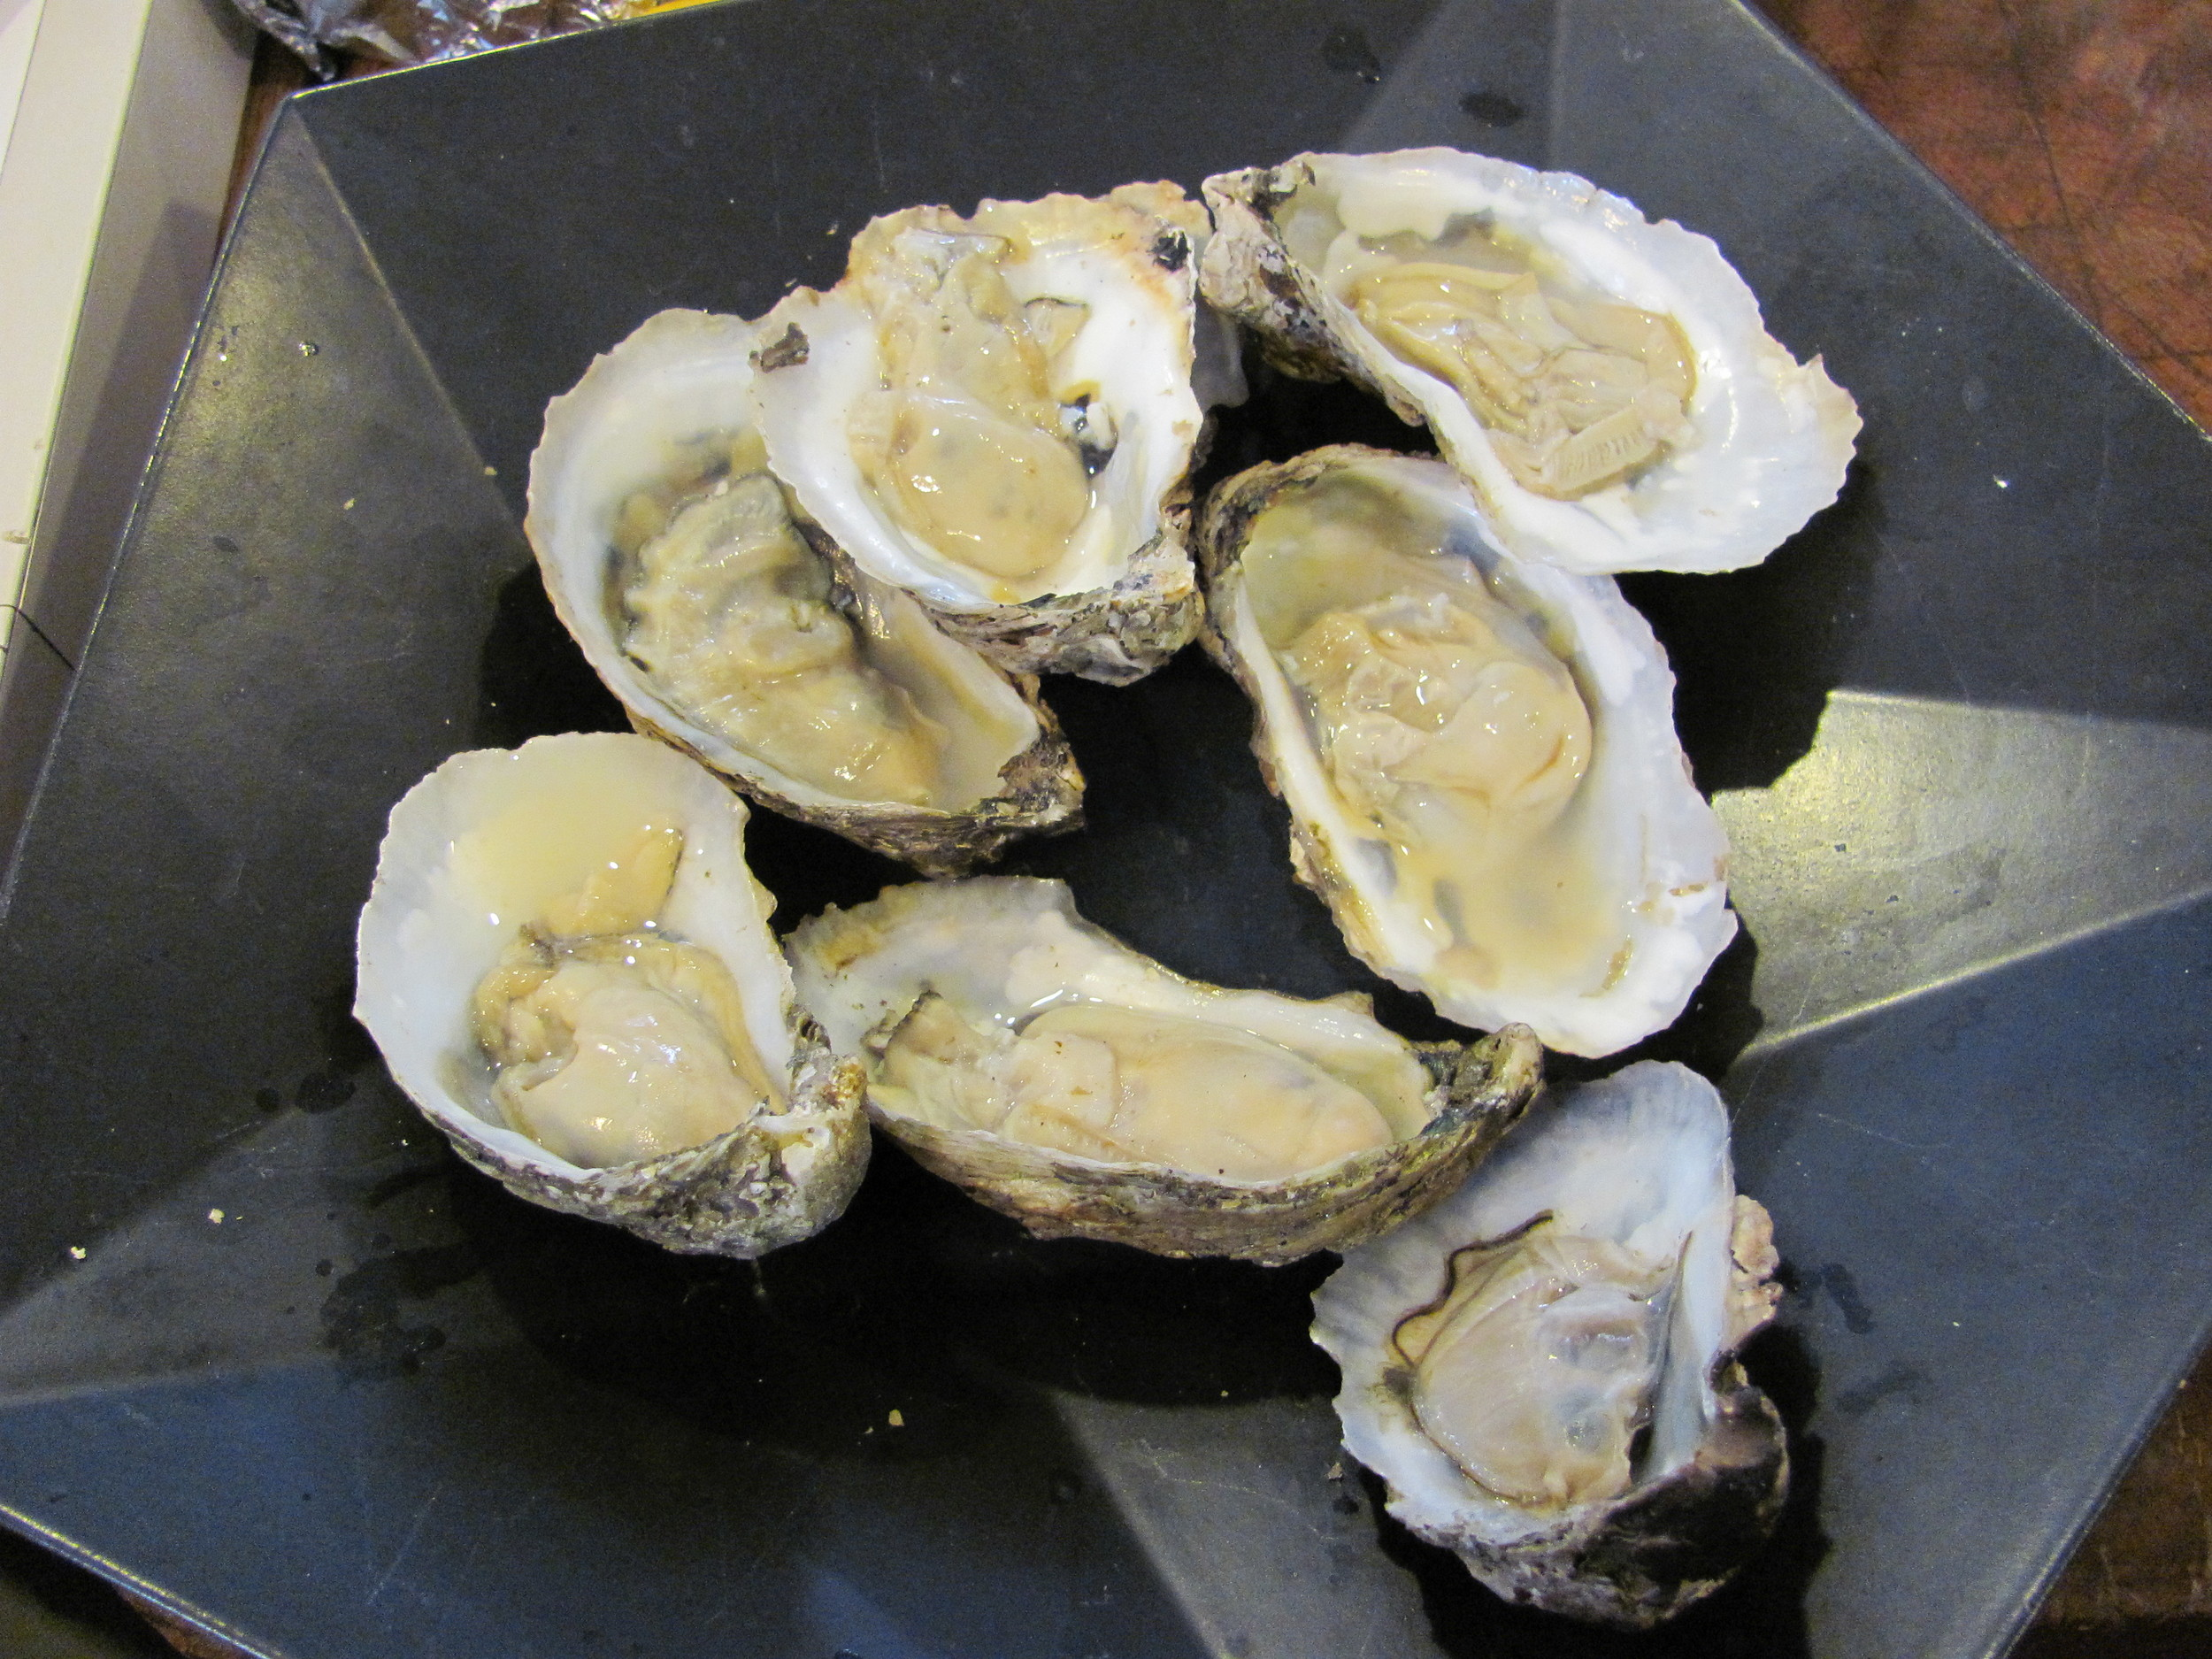 Smoked oysters... ok, so a lot of this stuff isn't kosher. But it's beautiful!